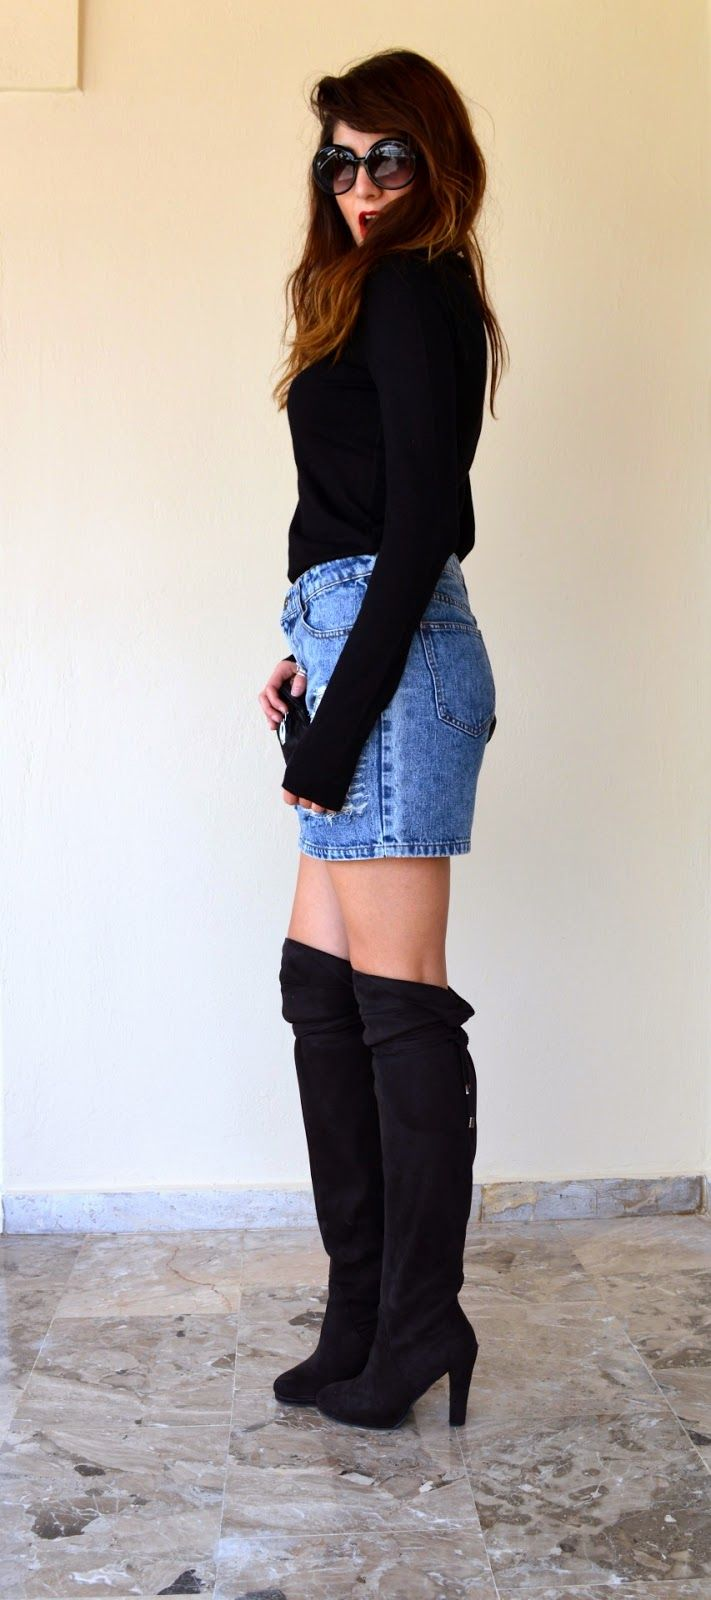 #thevirgostyle #blog #greek #blogger #fashion #style #ripped #denim #skirt #boots #suede #highknee #kneehigh #black #redlips